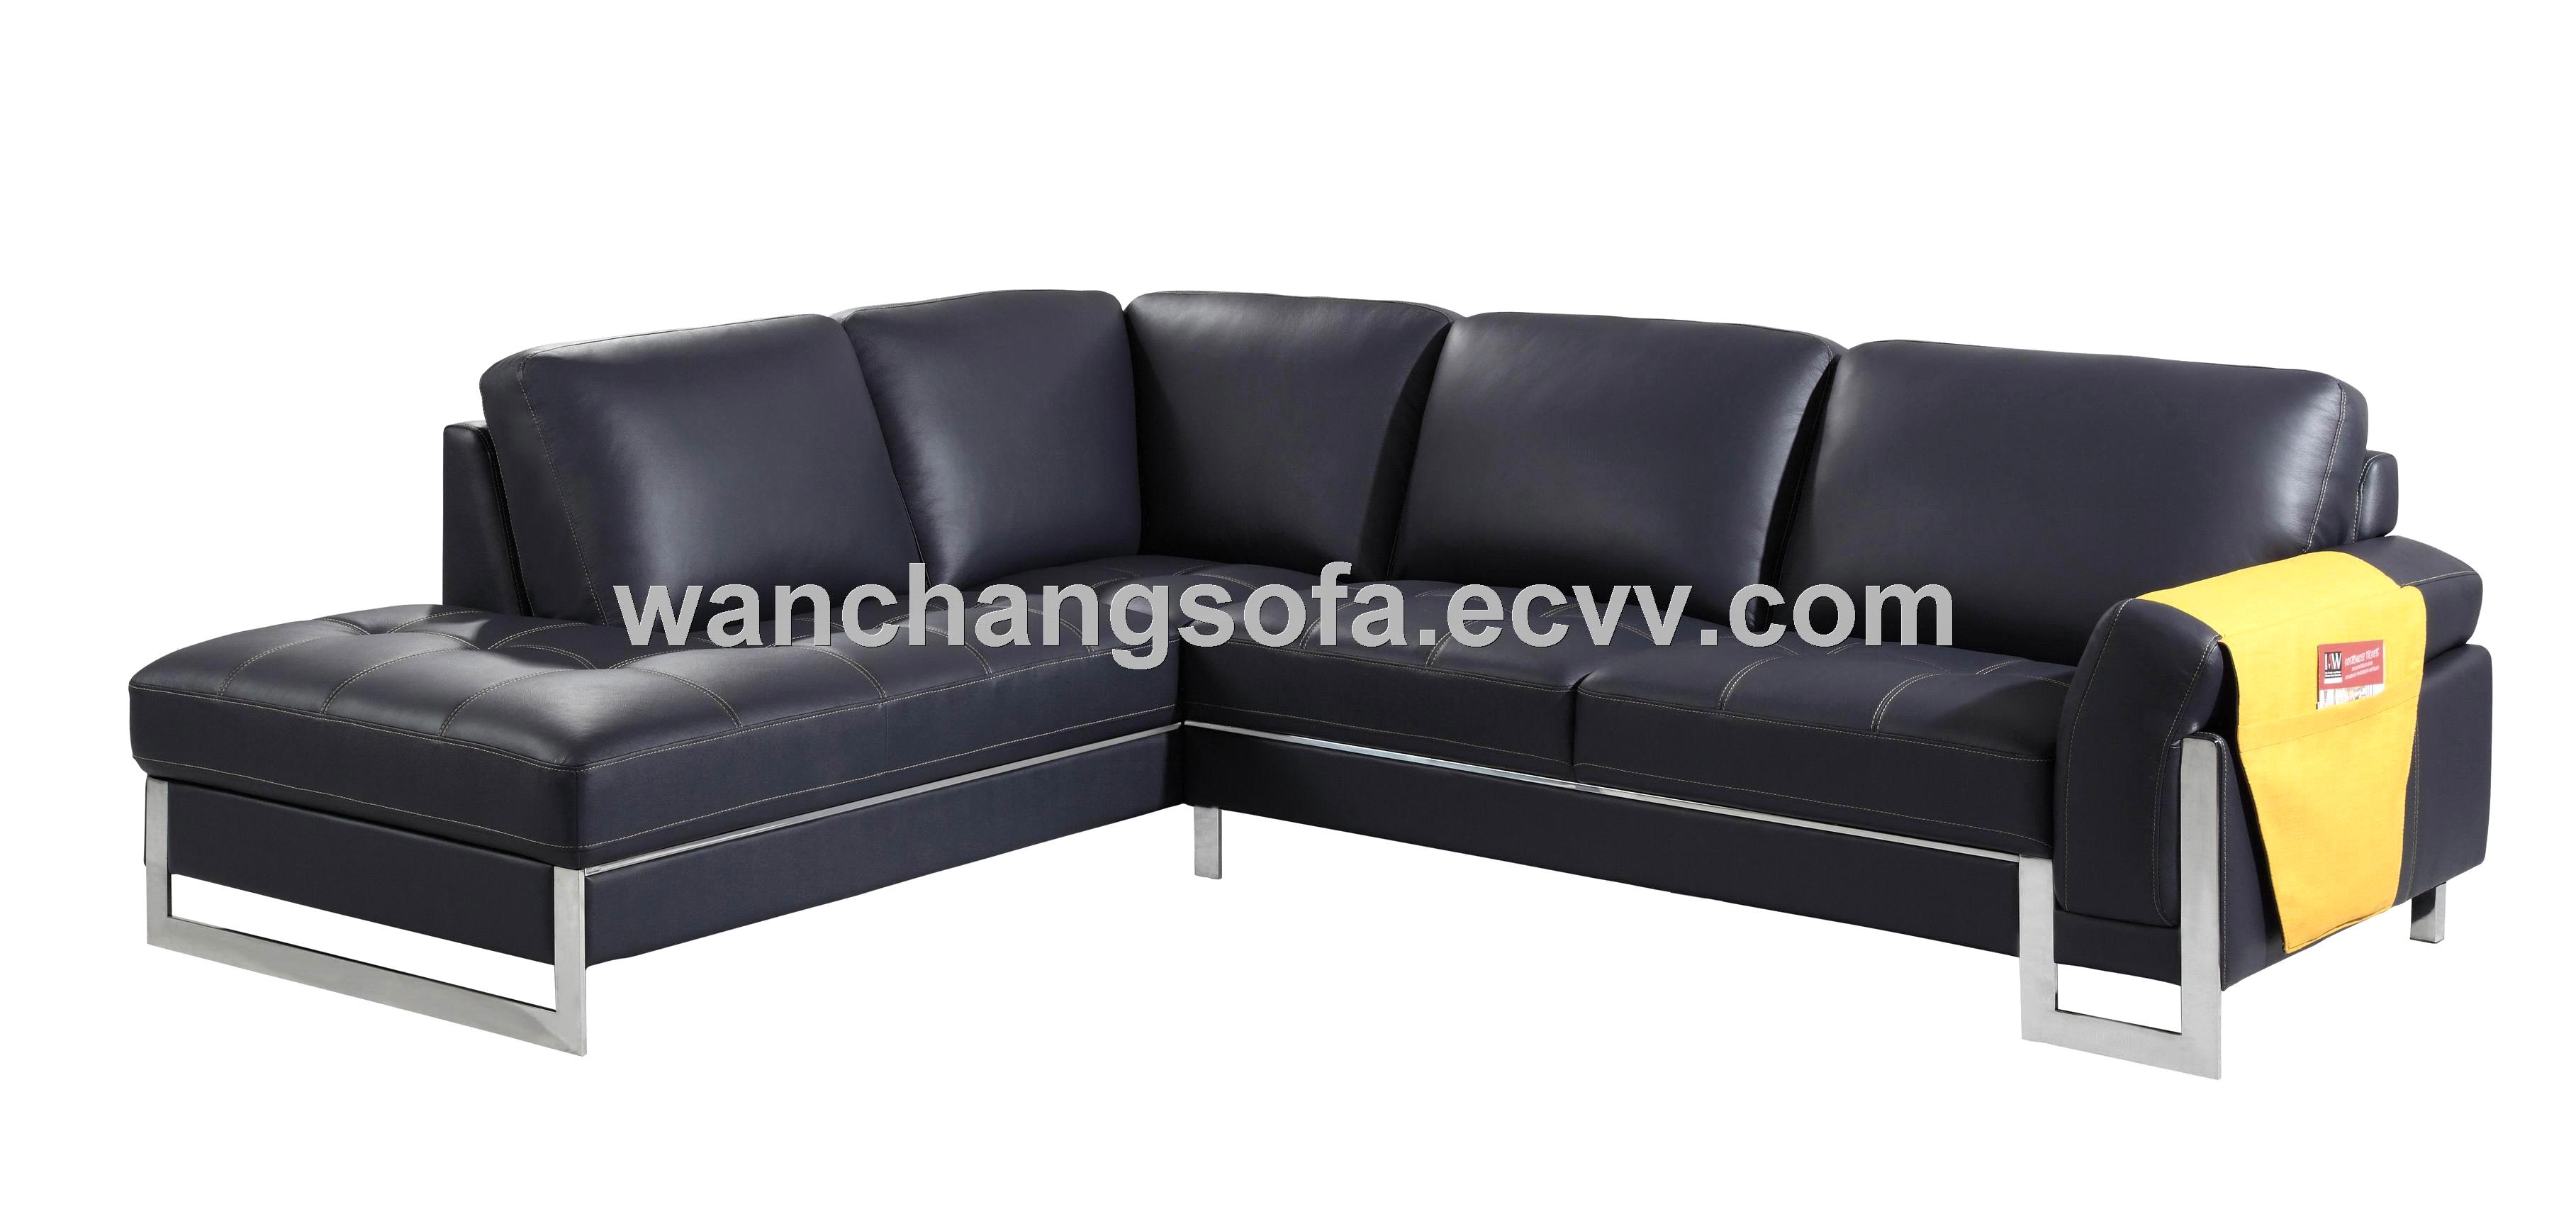 Dark blue leather sectional sofa set purchasing, souring agent : ECVV.com purchasing service ...